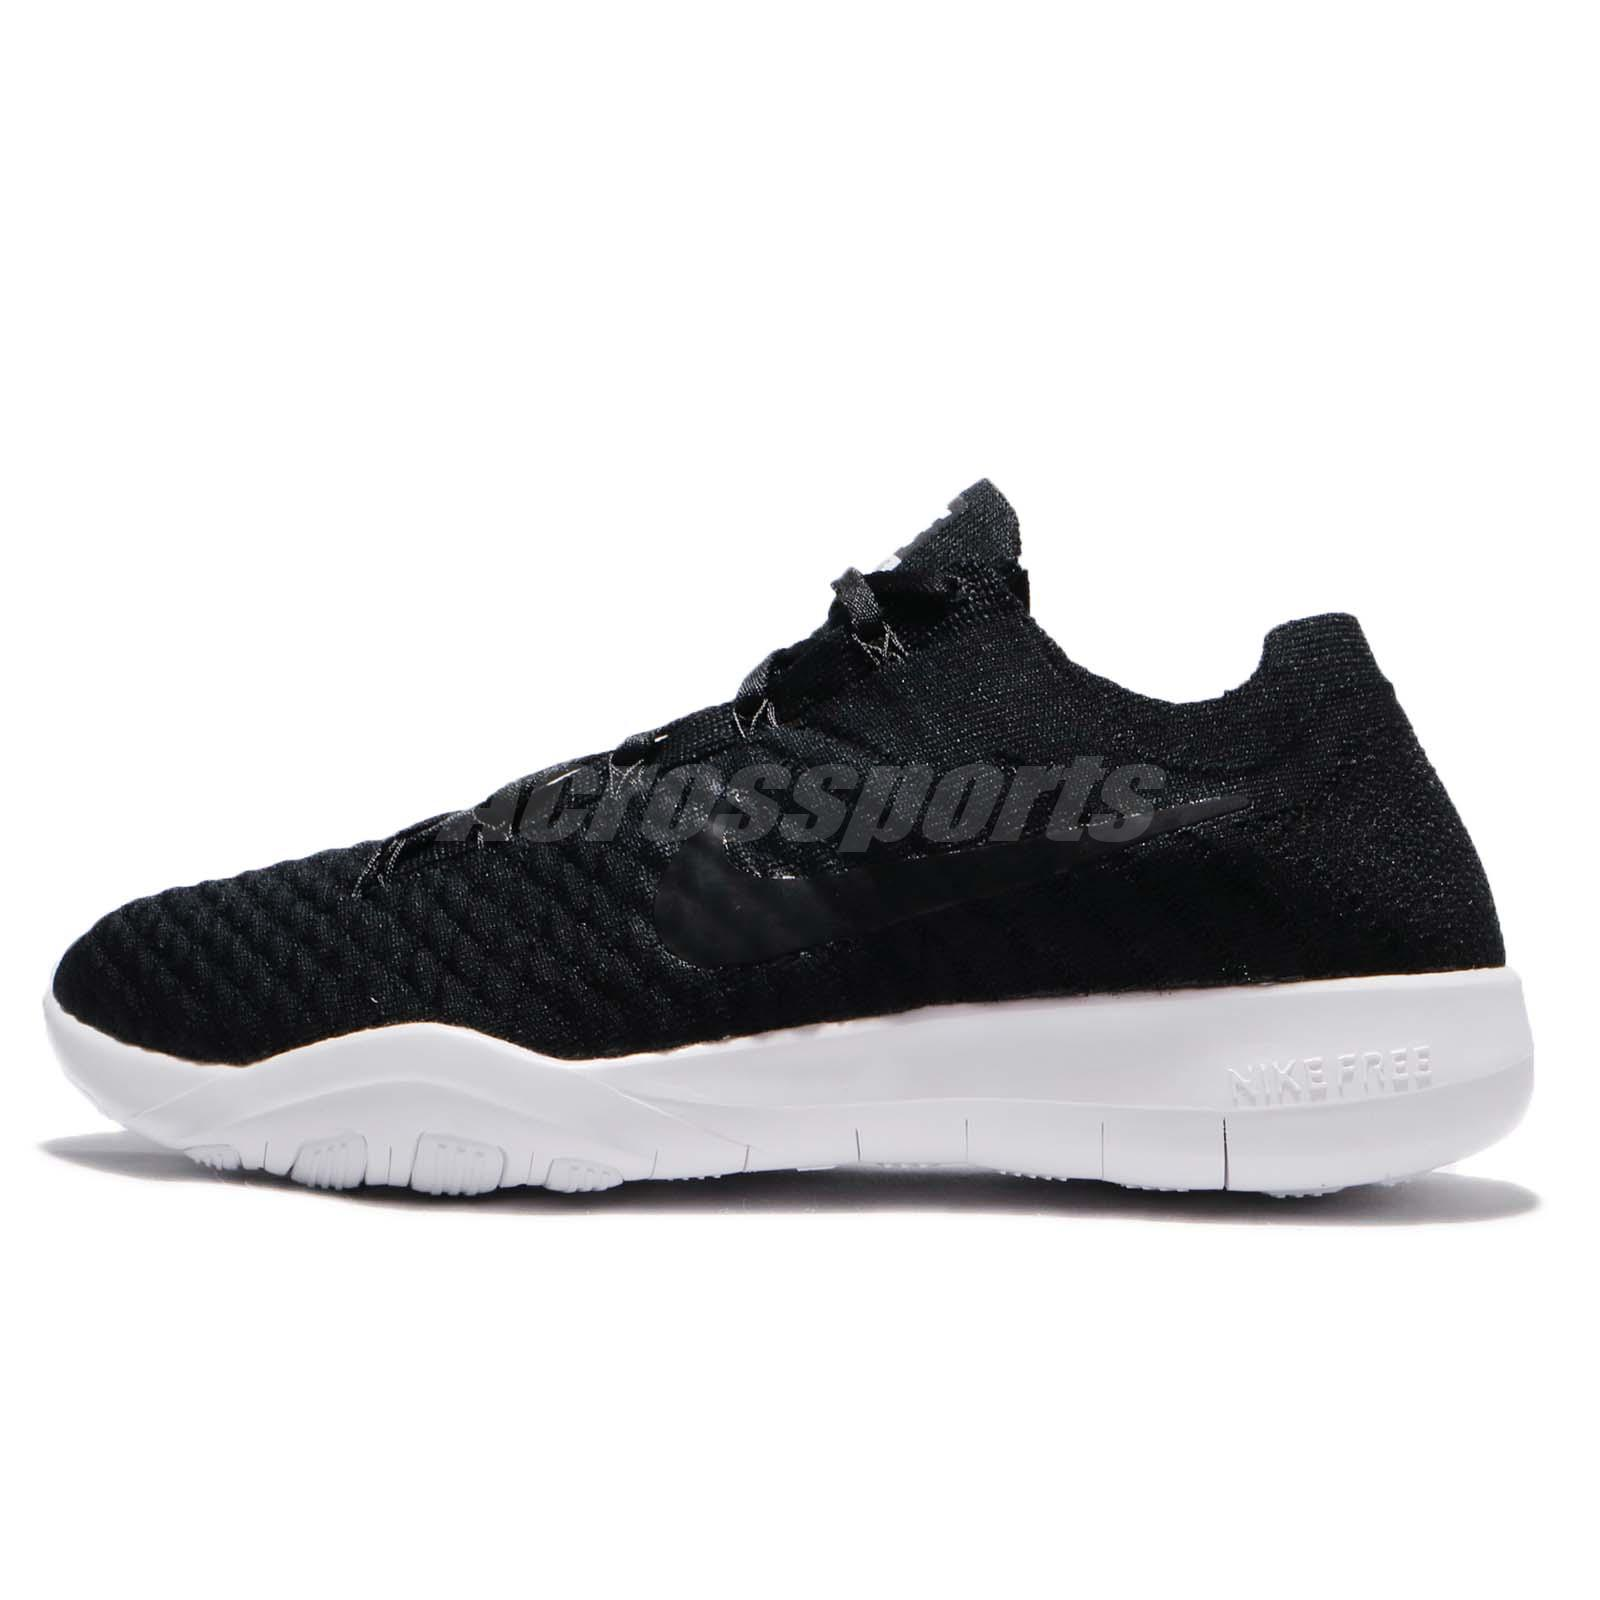 NIKE Womens Nike Lunarsolo AA4080-001 BLACK/WHITE-ANTHRACITE Womens Size 6.5